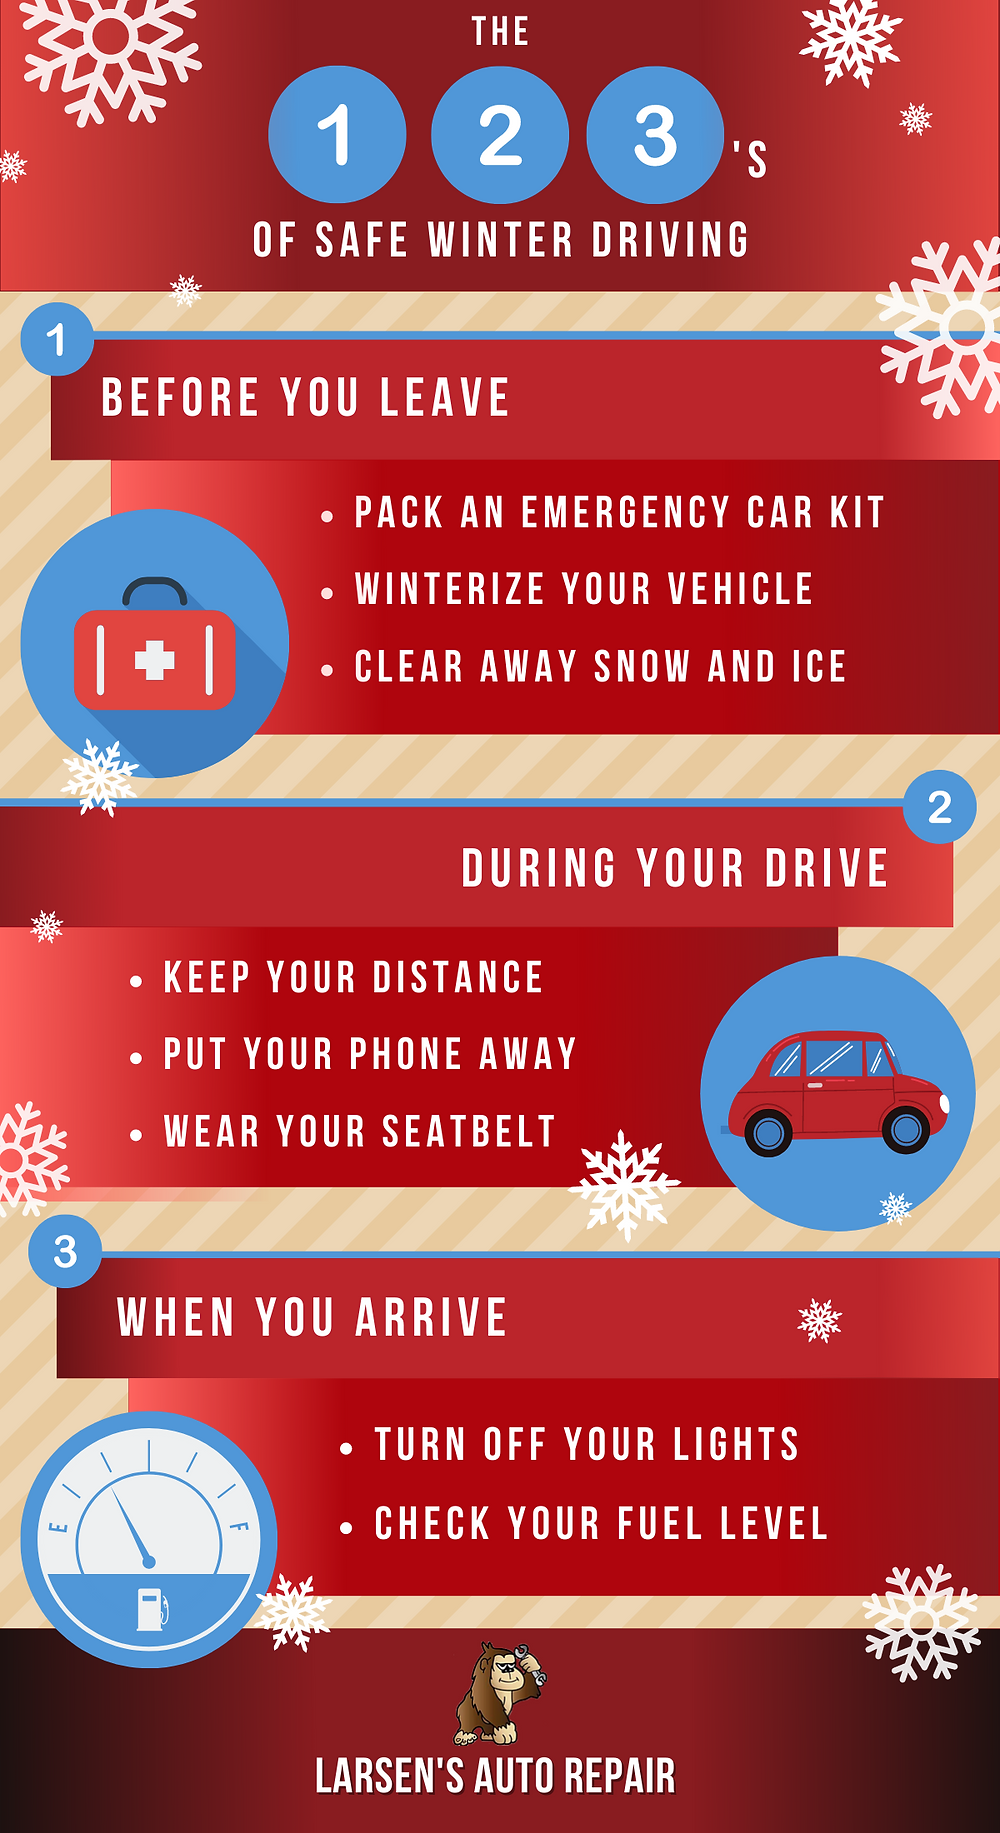 infographic on winter driving safety